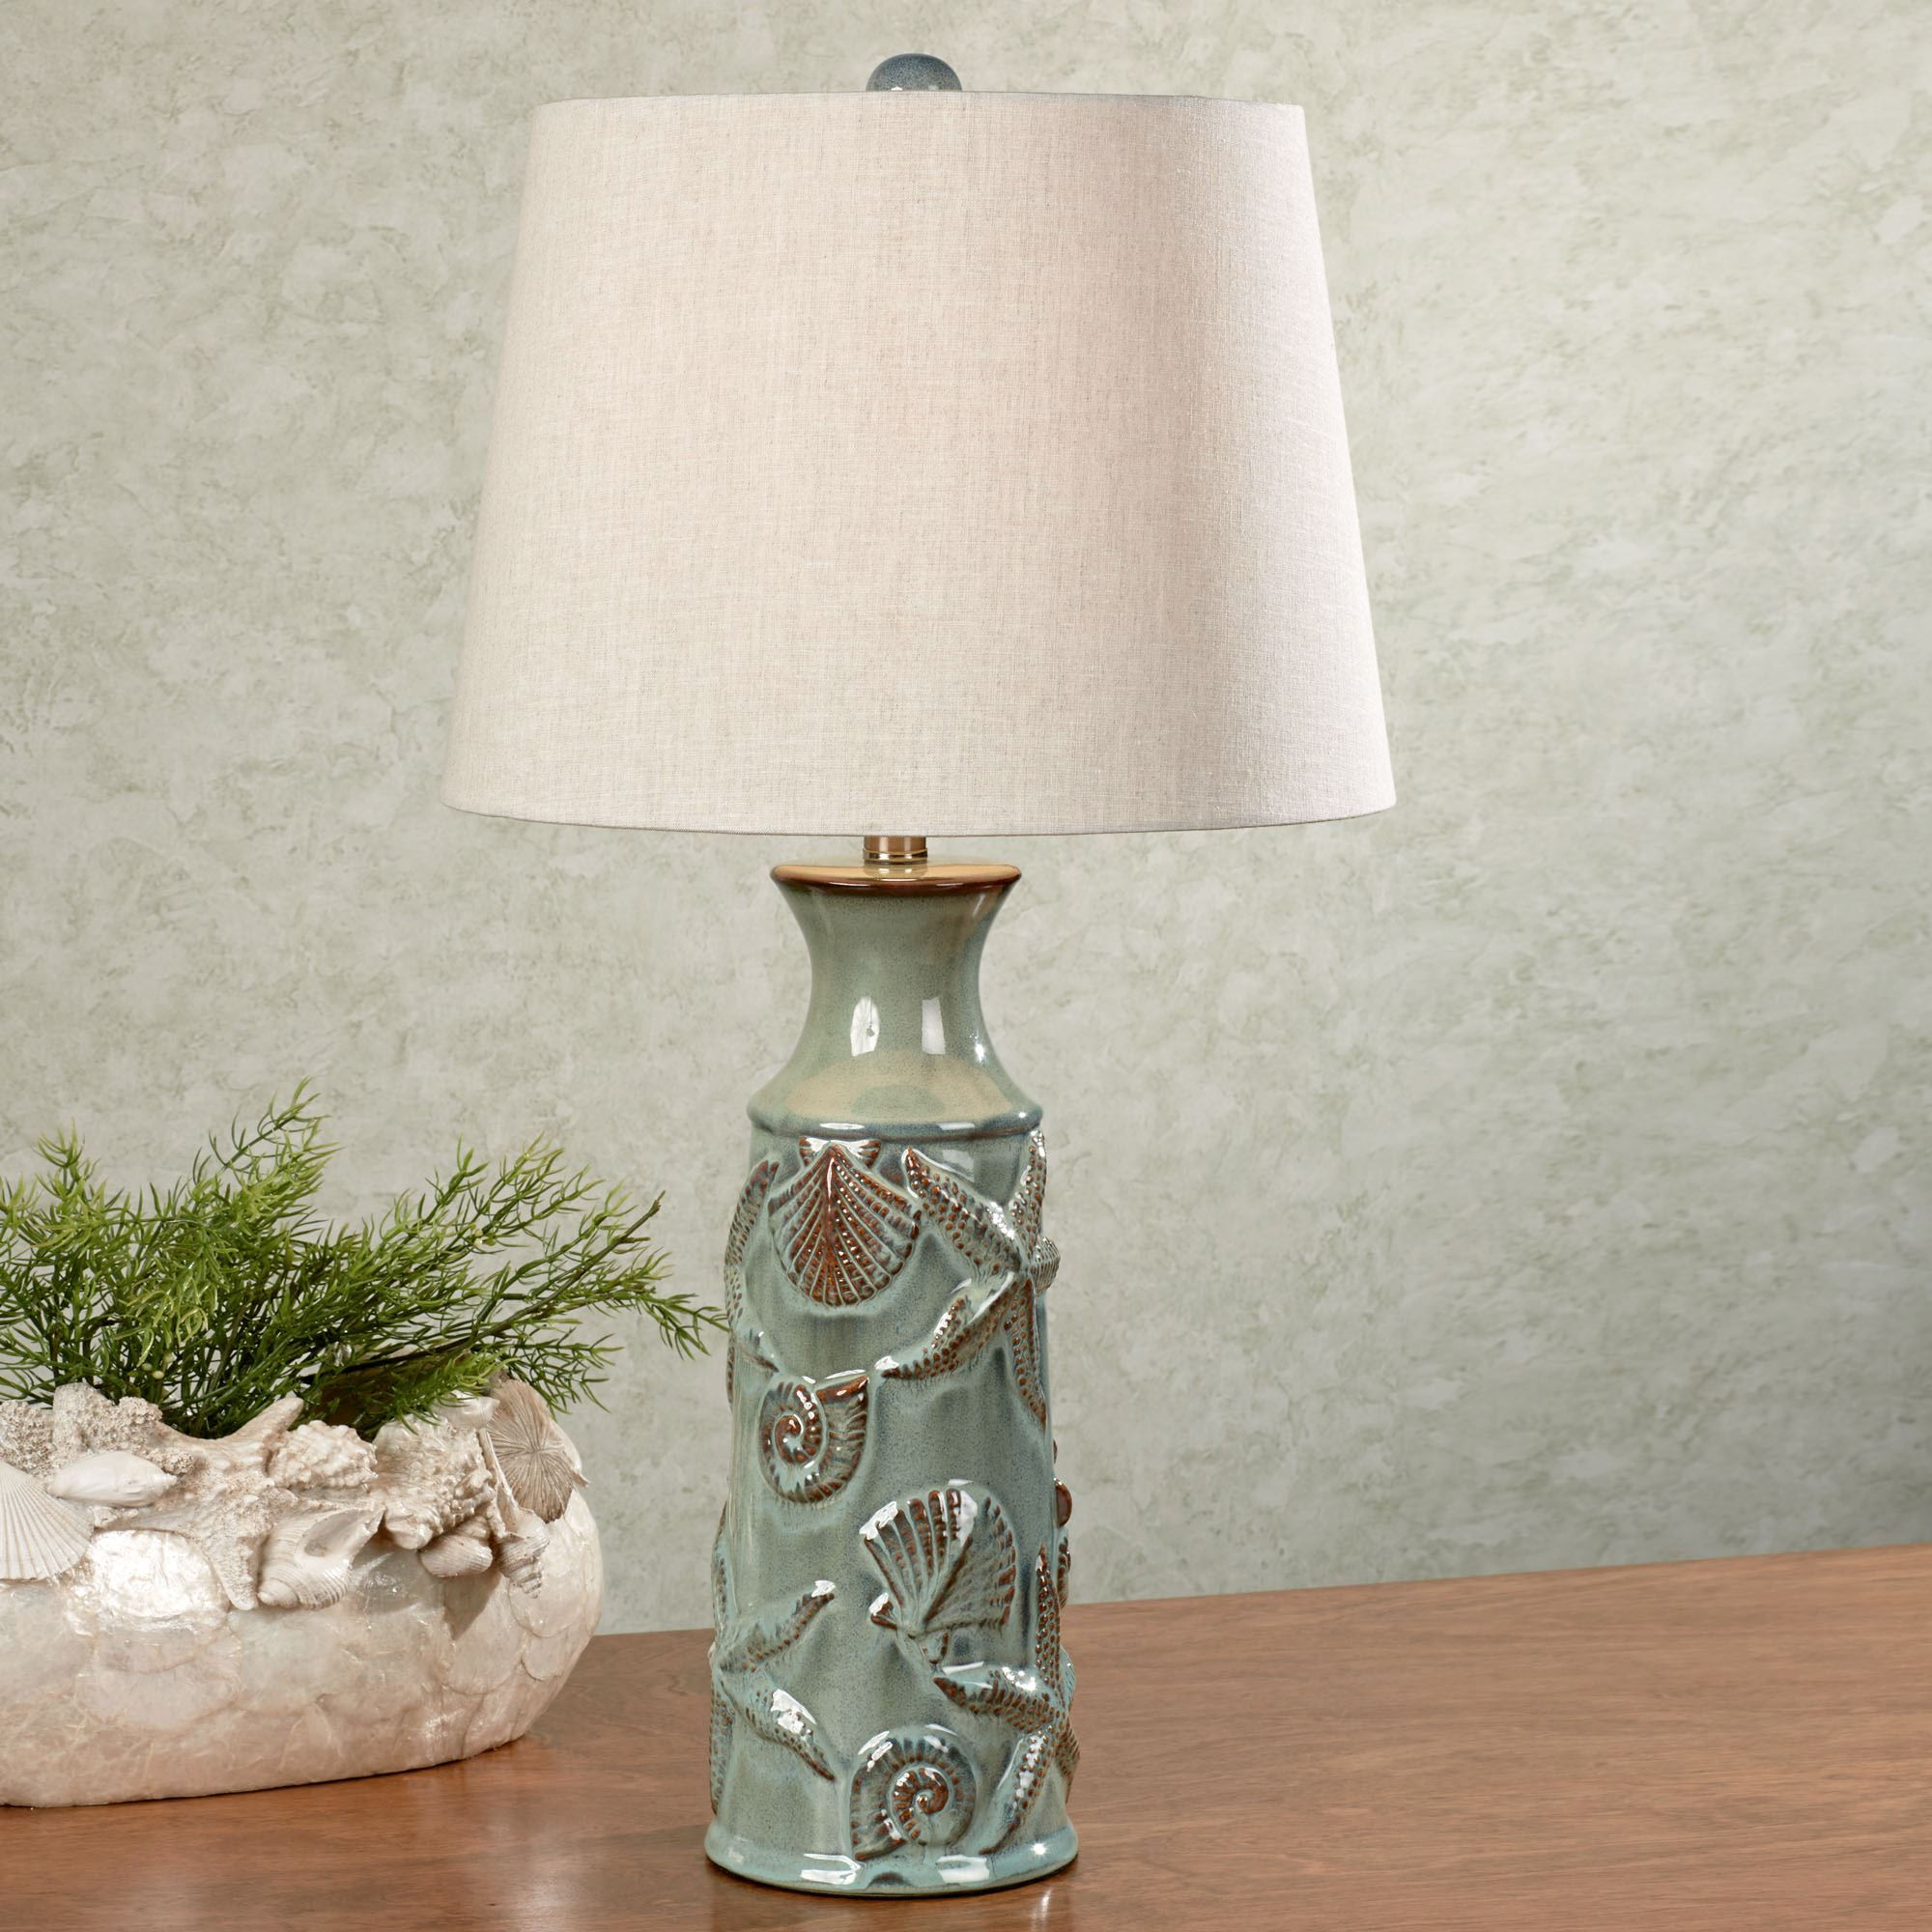 Coastal Lamps Asteroidea Ceramic Coastal Table Lamp